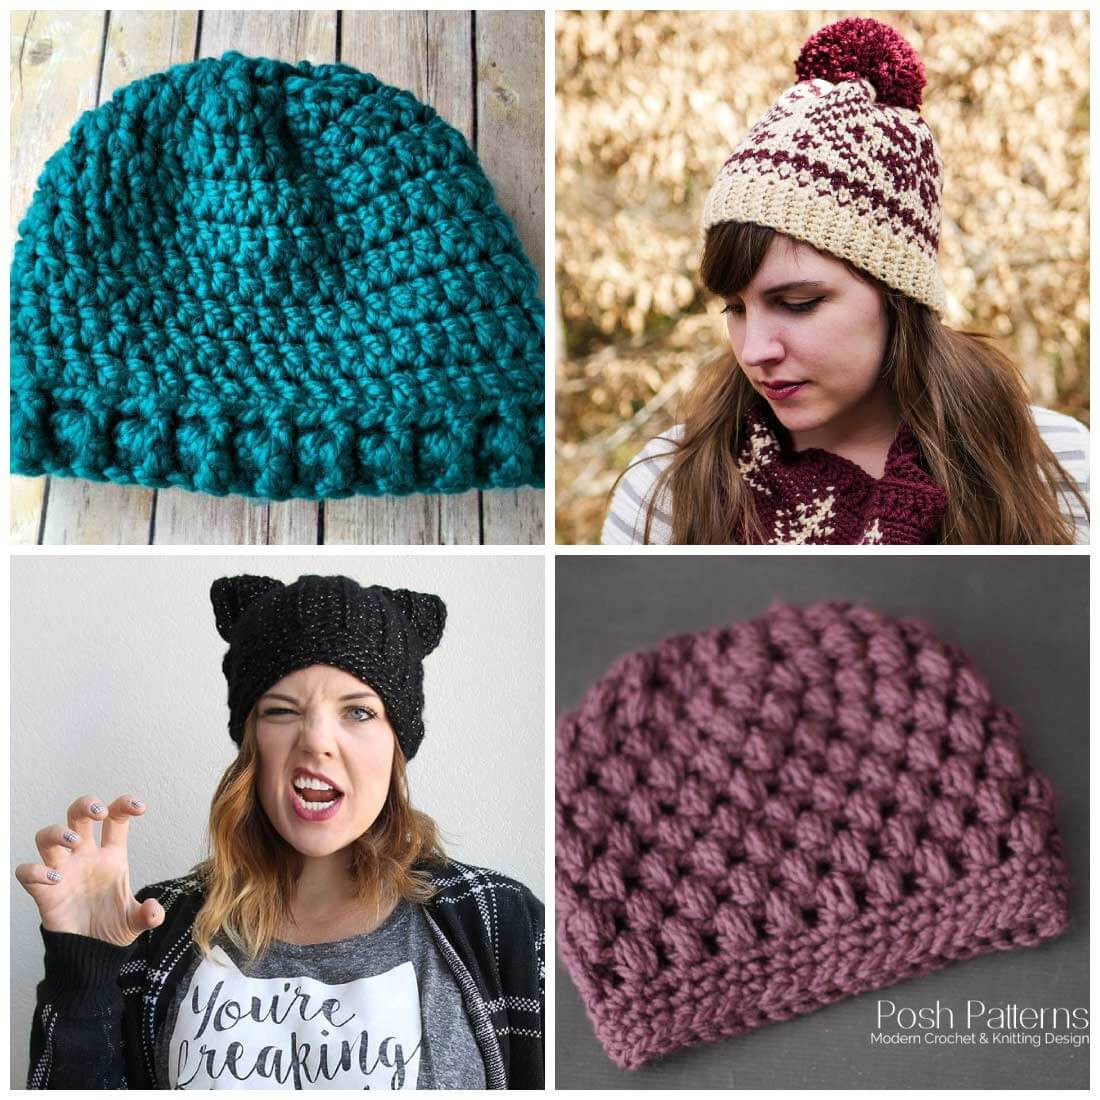 Best Of Free Crochet Hat Patterns Daisy Cottage Designs Free Crochet Beanie Hat Pattern Of Amazing 48 Images Free Crochet Beanie Hat Pattern